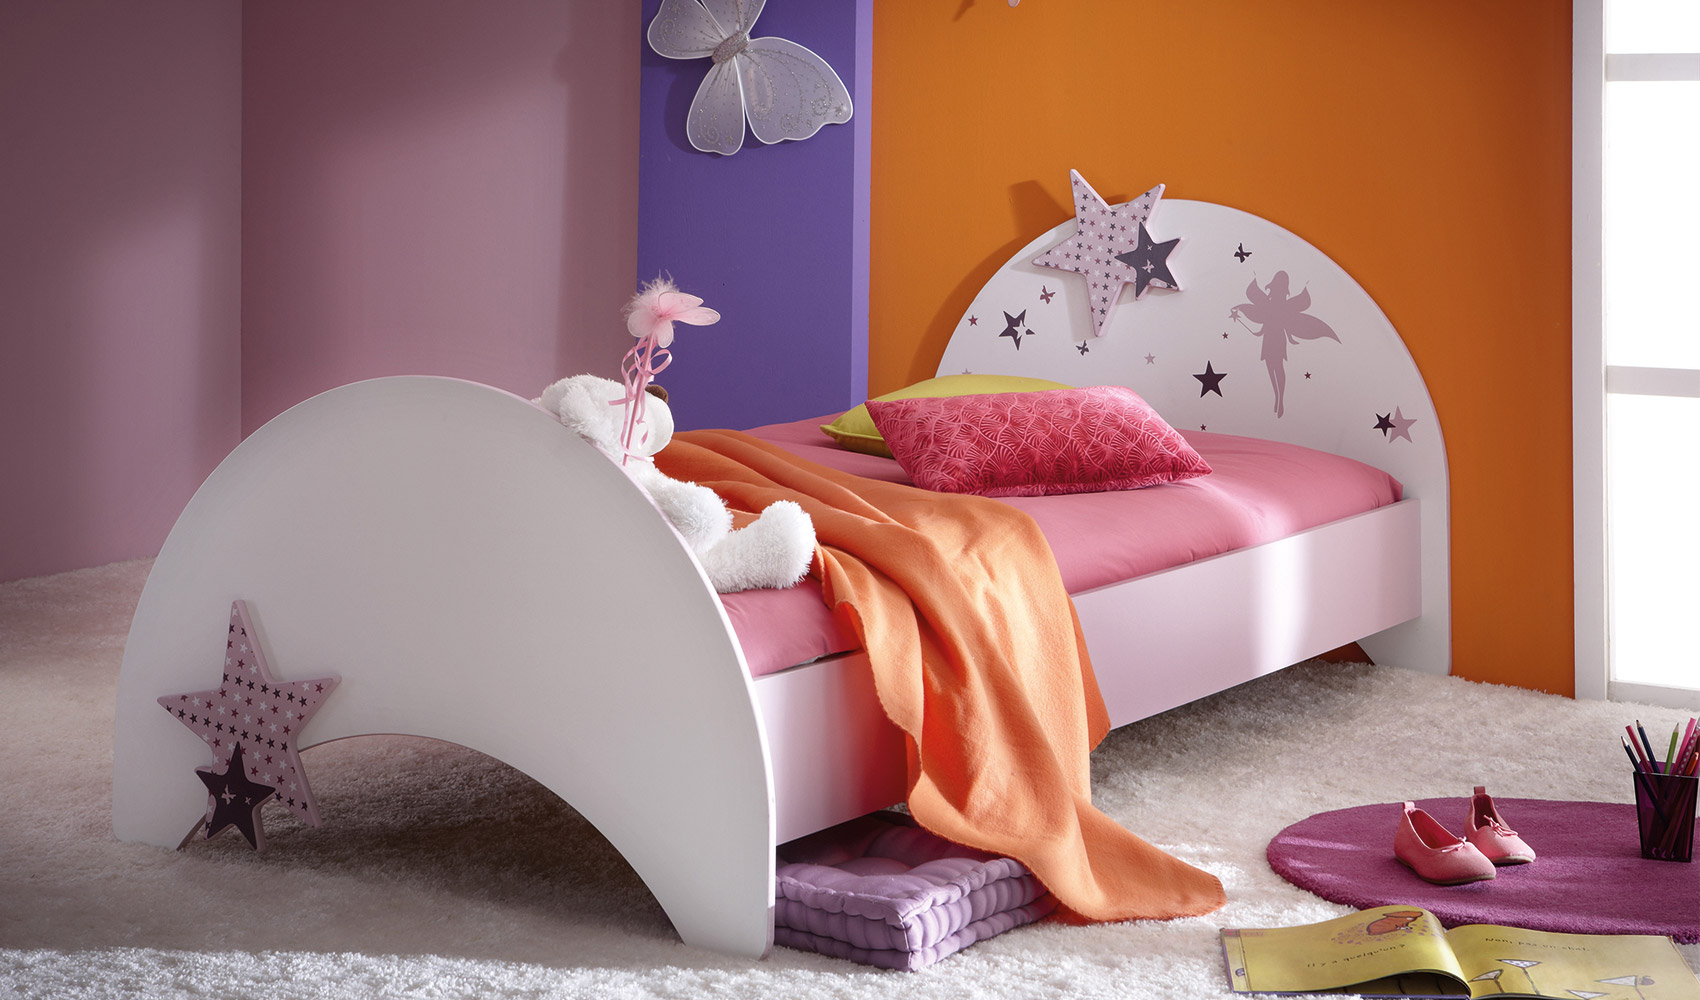 kinderbett weiss violett einzelbett bett m dchen feen und. Black Bedroom Furniture Sets. Home Design Ideas